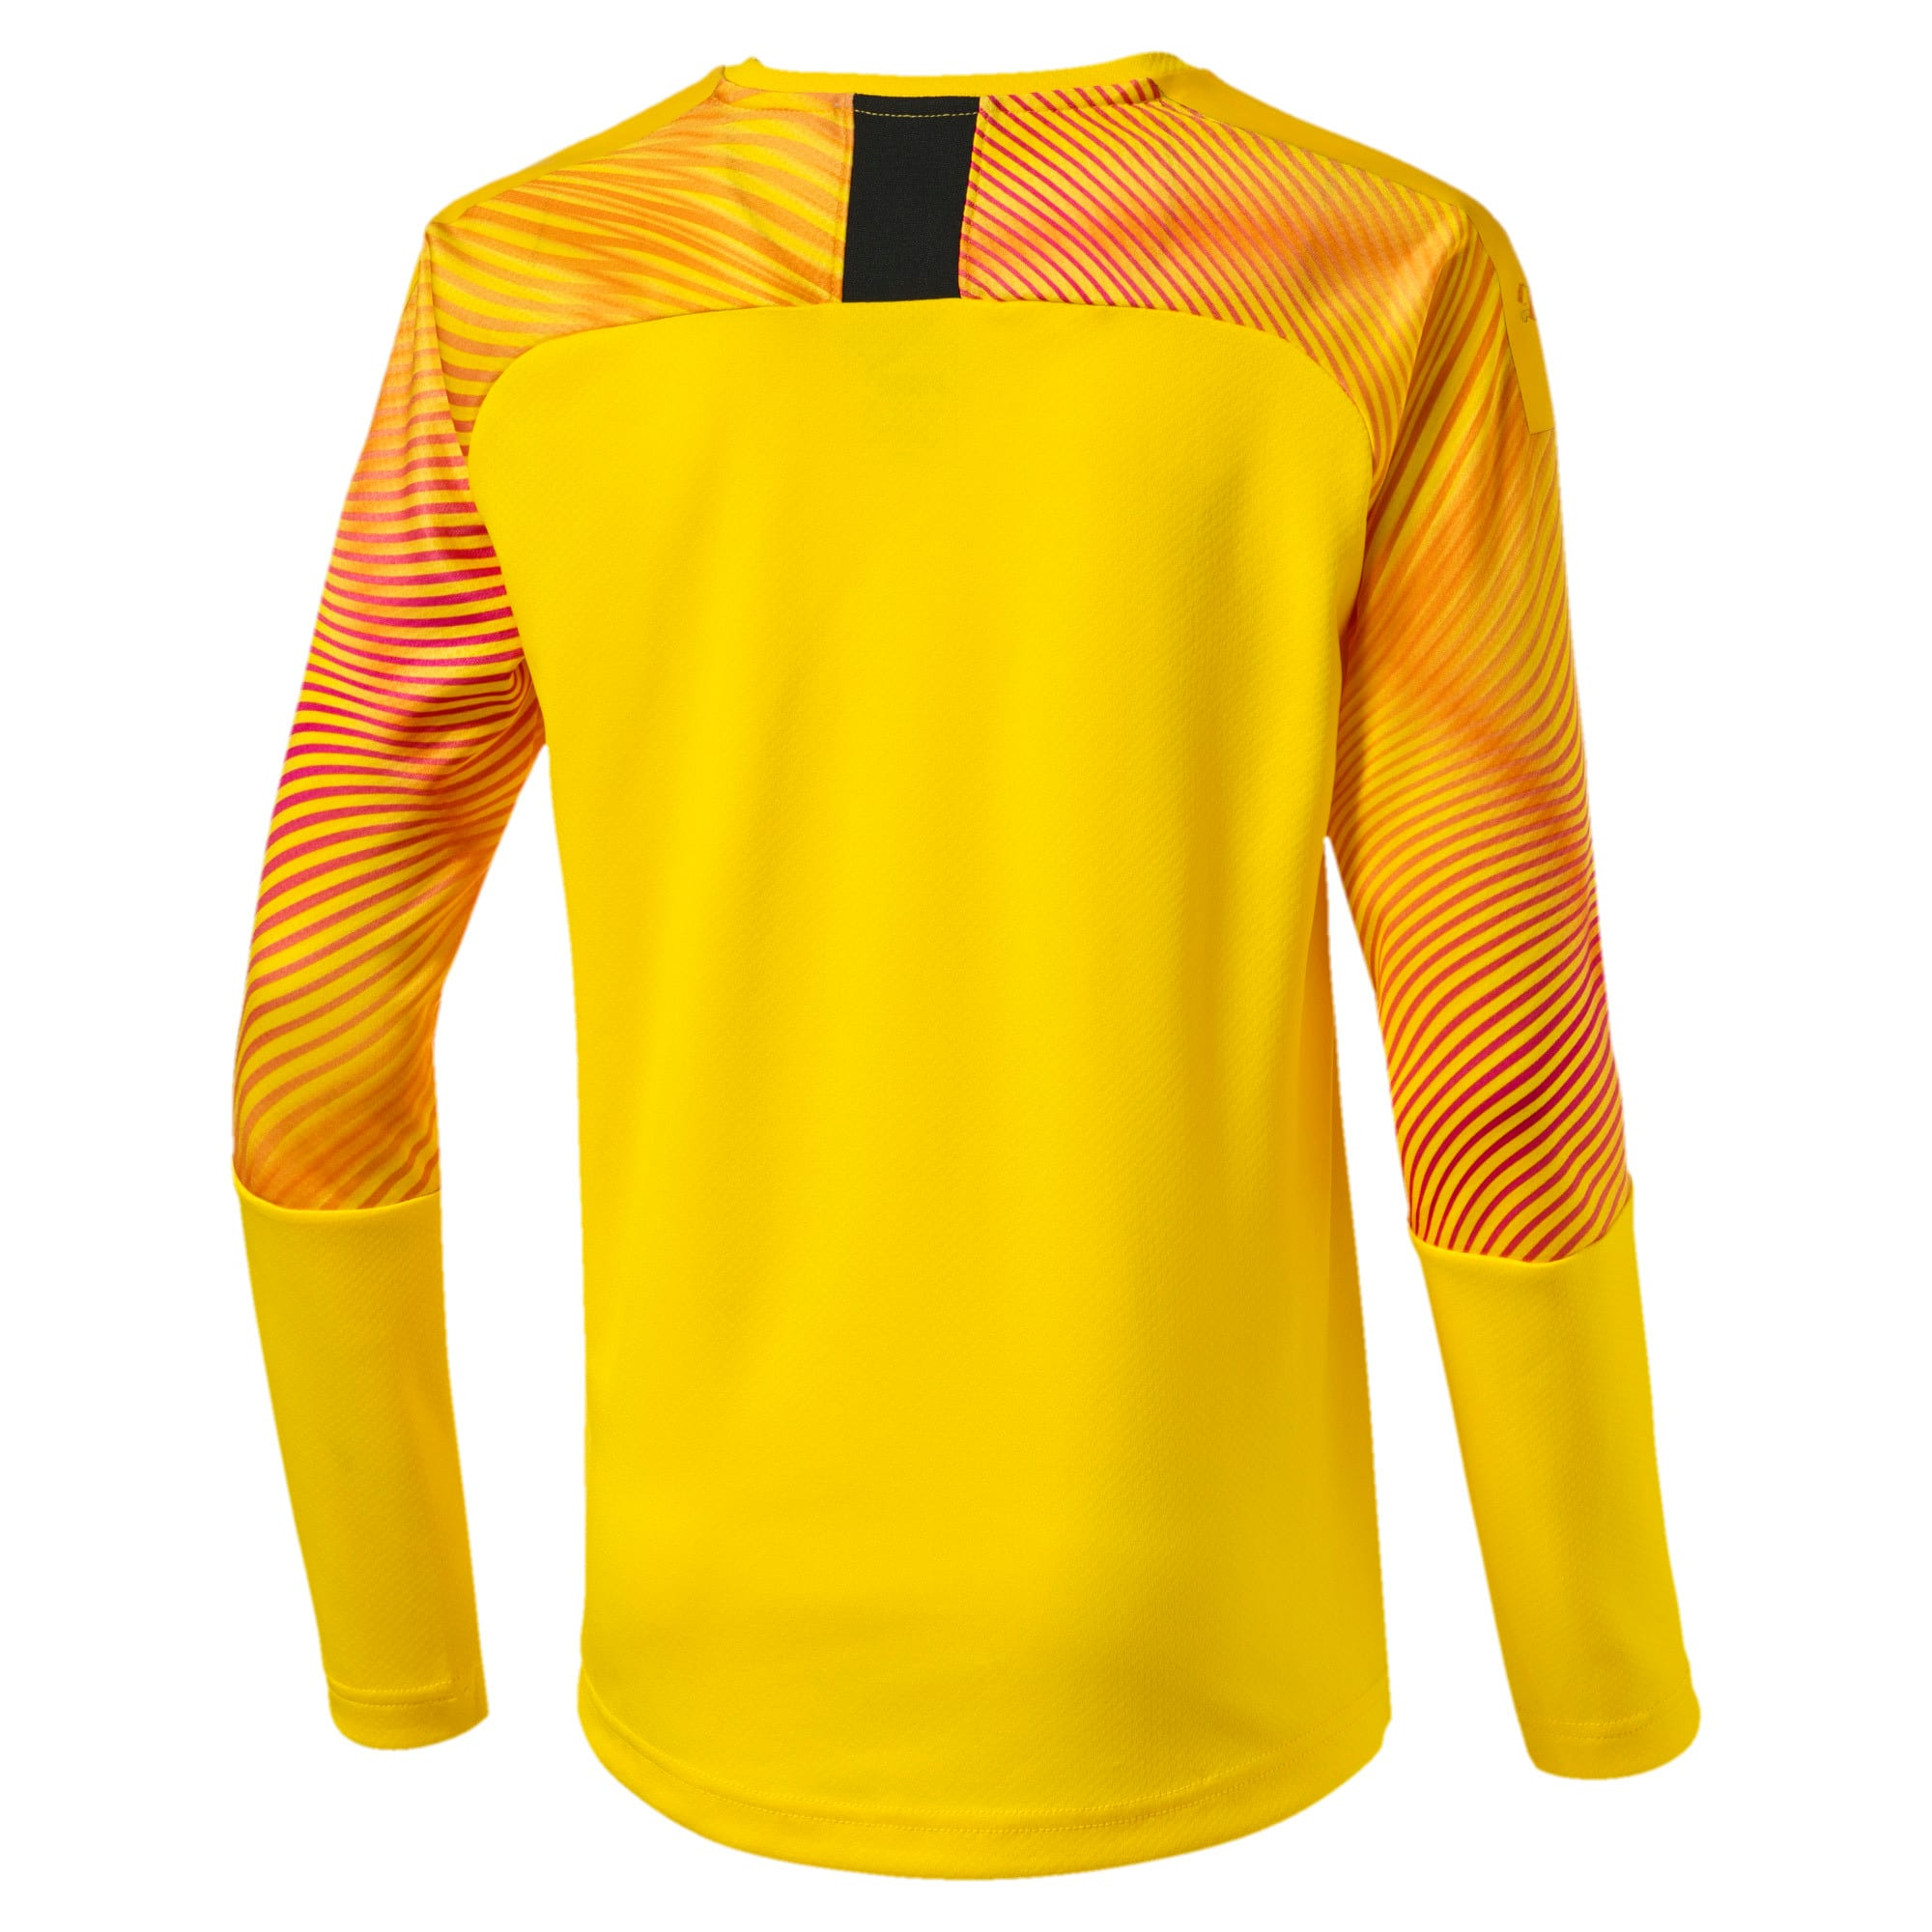 Thumbnail 2 of Man City Long Sleeve Kids' Replica Goalkeeper Jersey, Cyber Yellow-Puma Black, medium